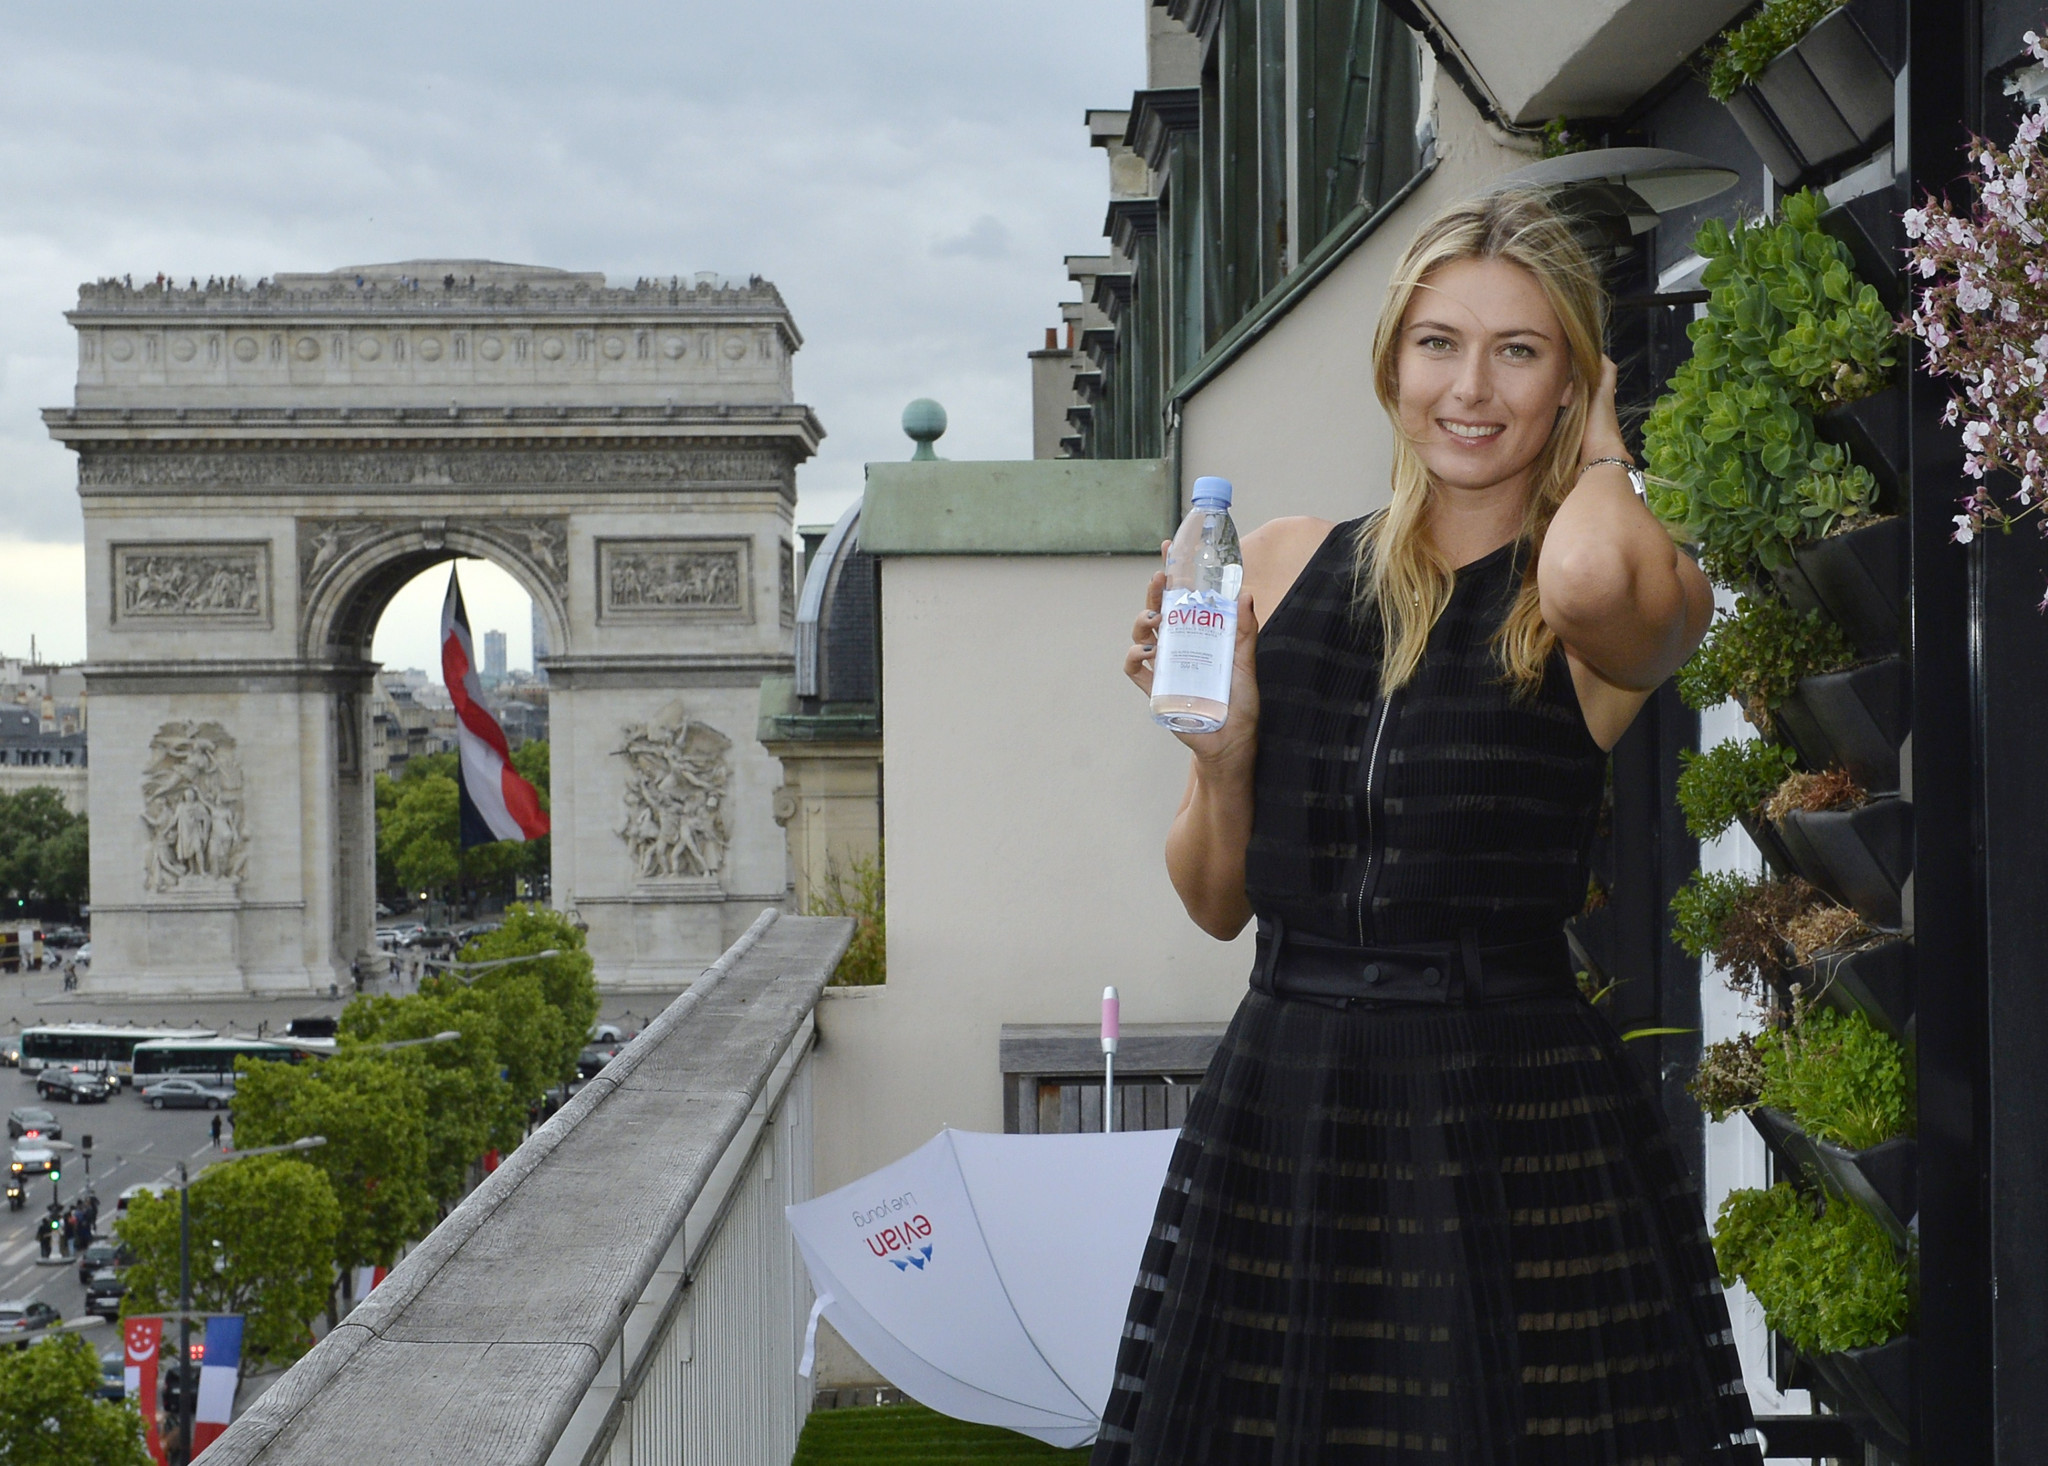 Maria Sharapova was well known for her numerous sponsorship deals with companies such as Evian and was named Forbes' highest-paid female athlete for 11 years in a row ©Getty Images